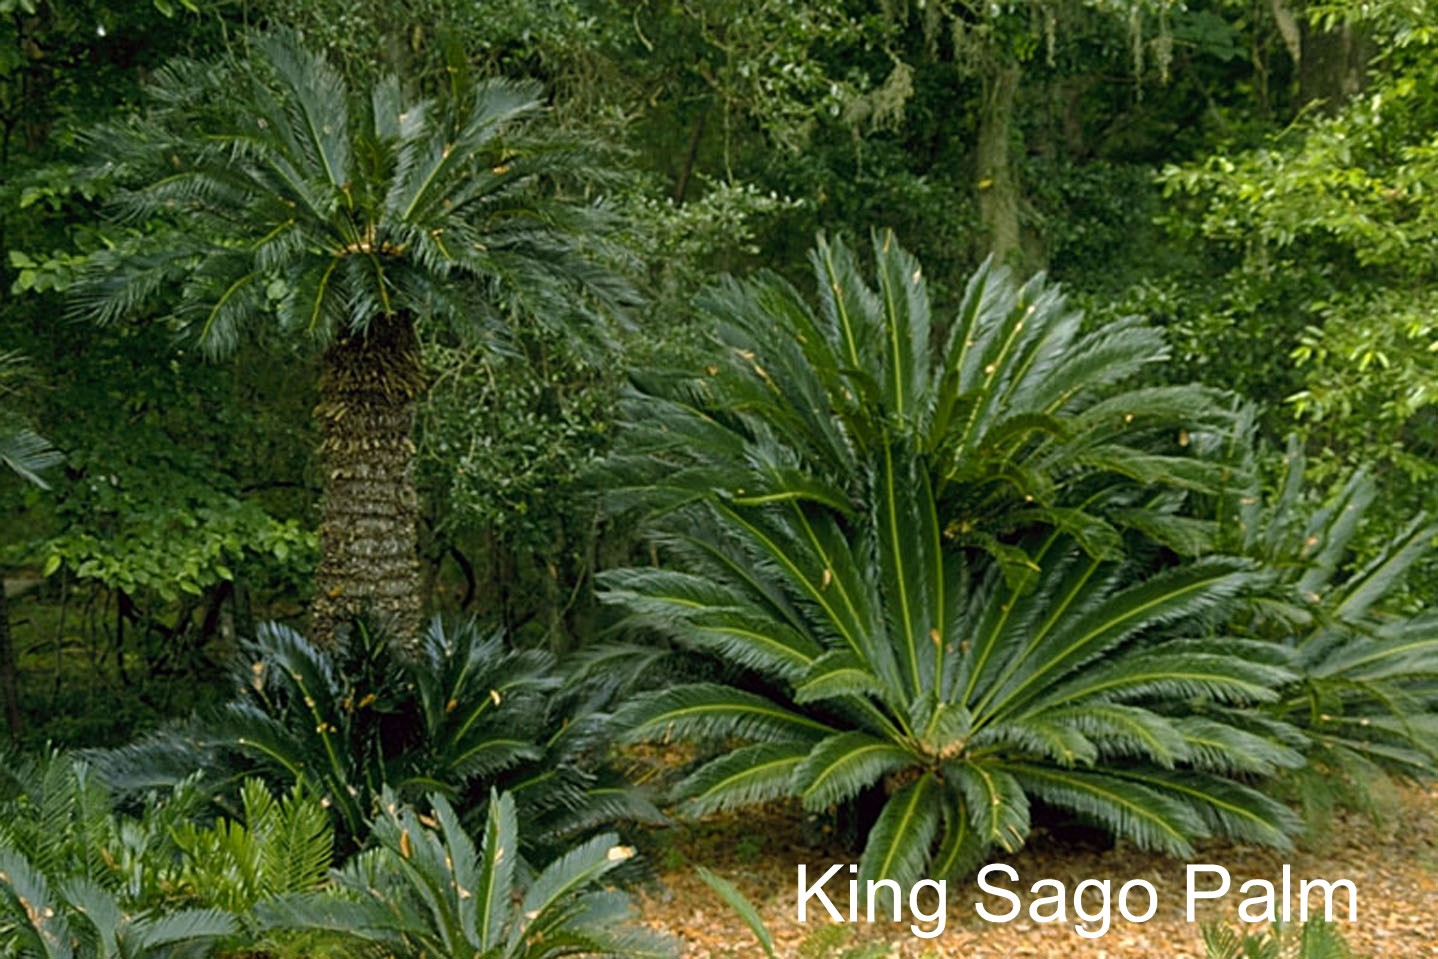 King Sago Palm.jpg